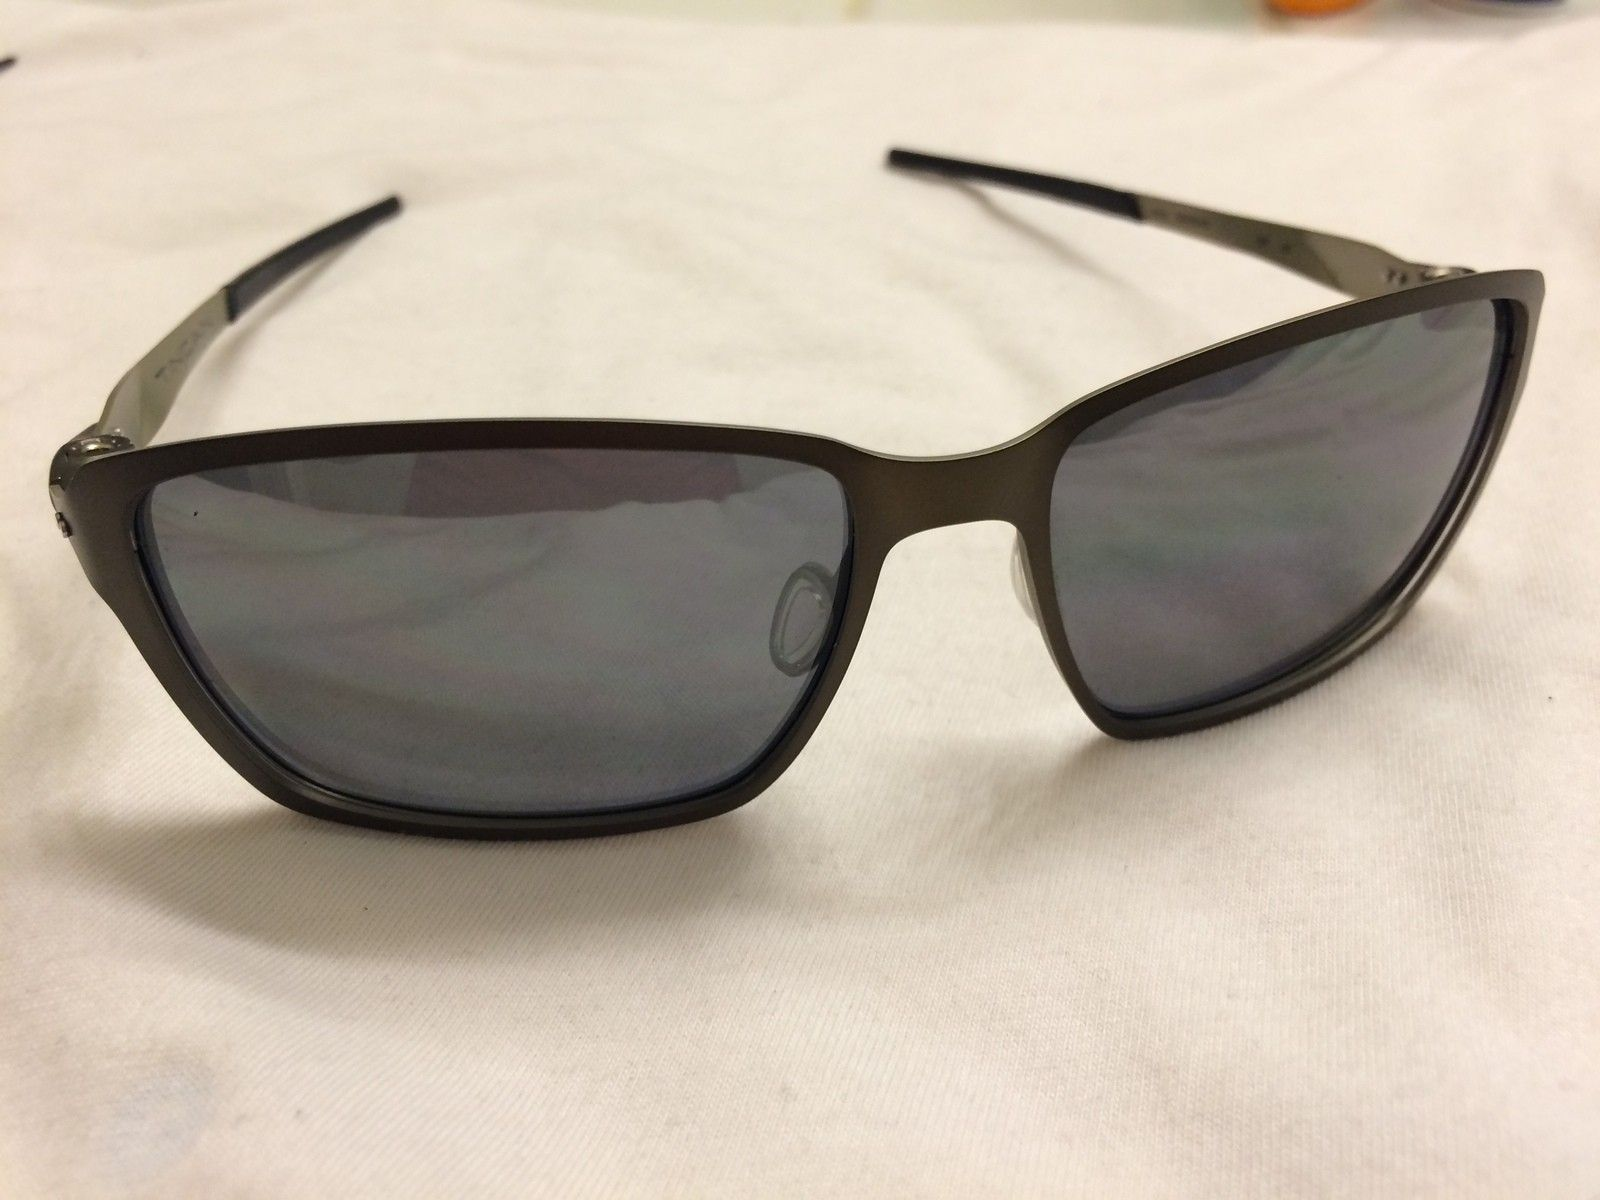 Tincan - Polarized - Under $99 - 2015-05-27 22.54.03.jpg